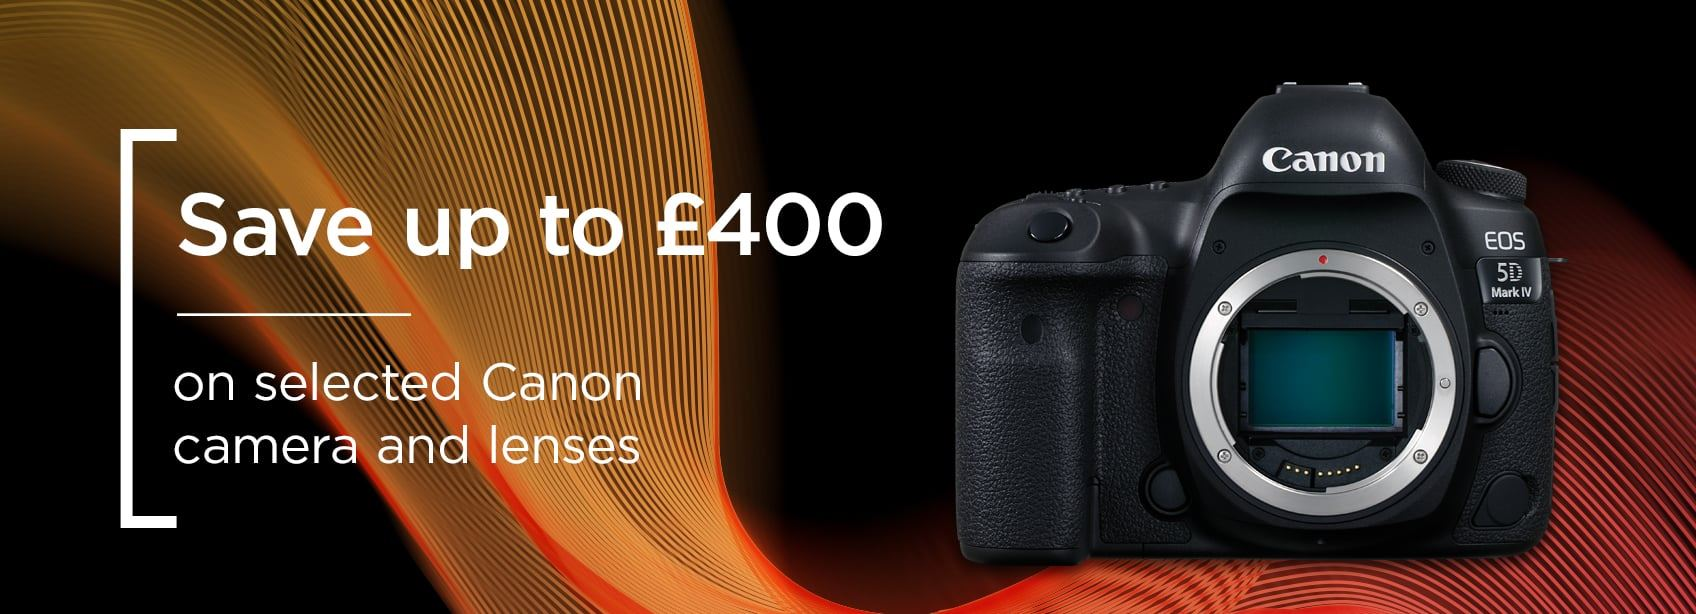 Save up to £400 - on selected Canon cameras and lenses